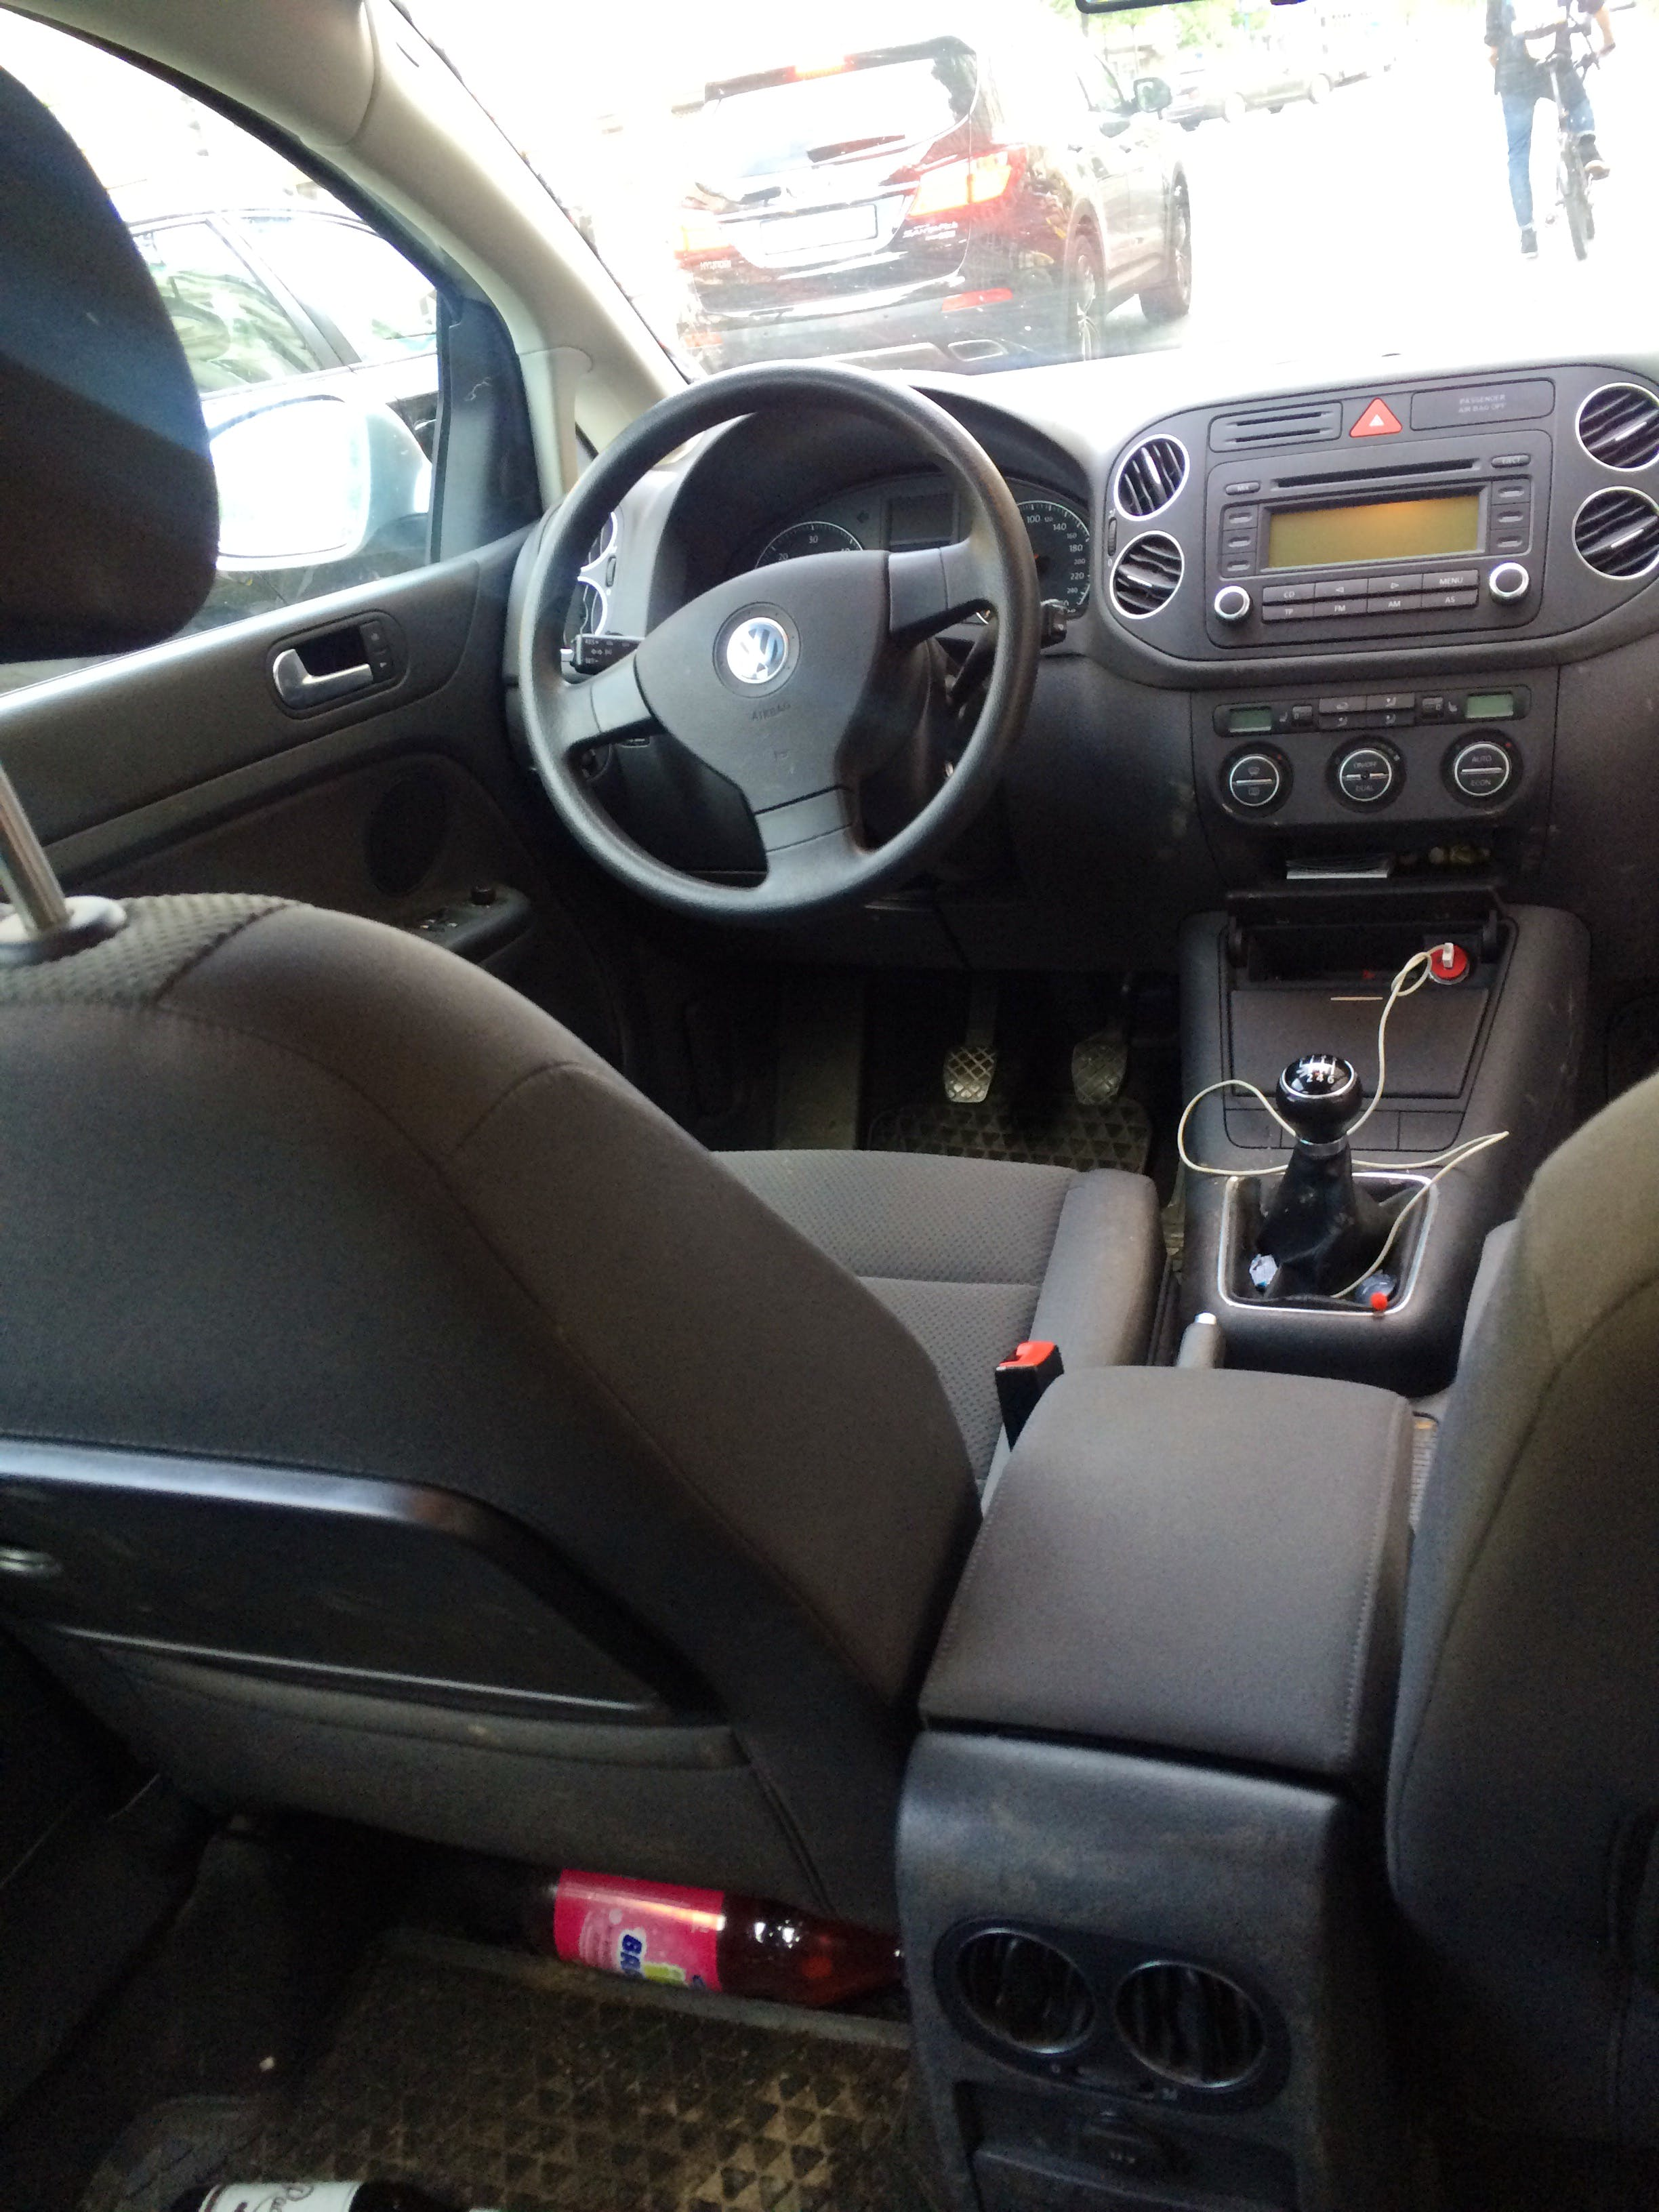 Volkswagen Golf Plus mit Kindersitz